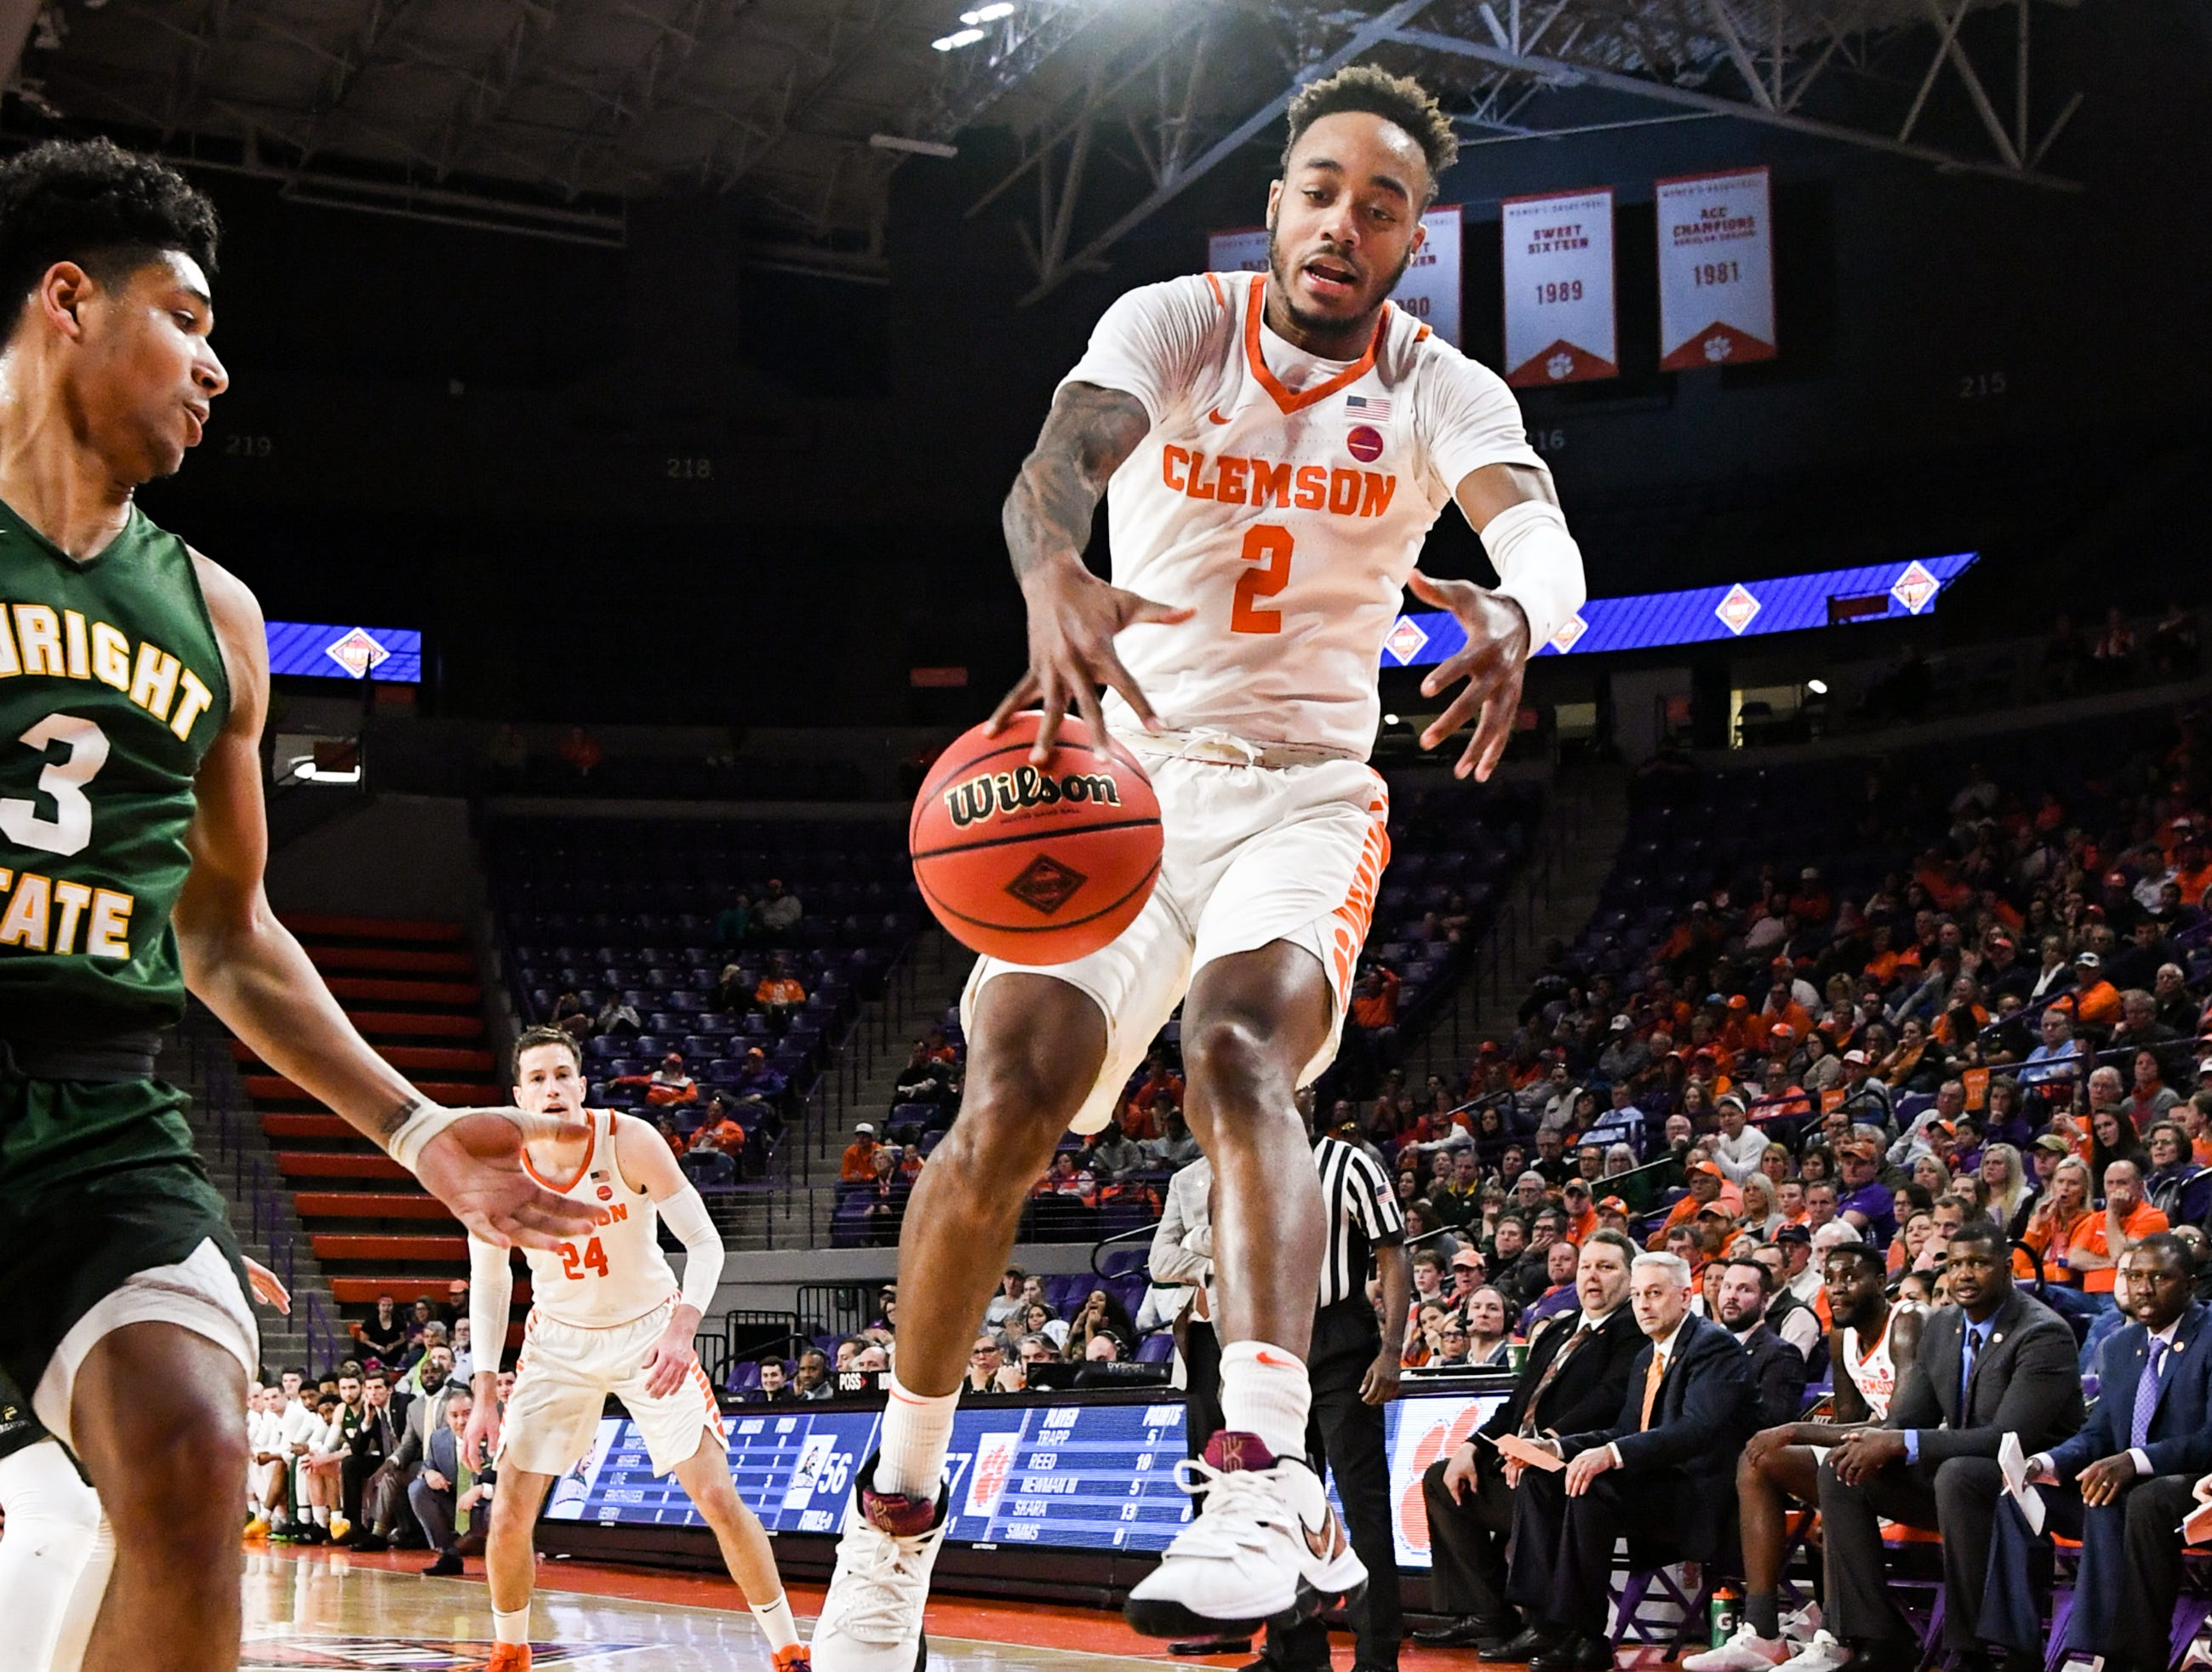 Clemson guard Marcquise Reed (2) reaches for a loose ball near Wright State guard Malachi Smith(13) during the second half of the NIT at Littlejohn Coliseum in Clemson Tuesday, March 19, 2019.